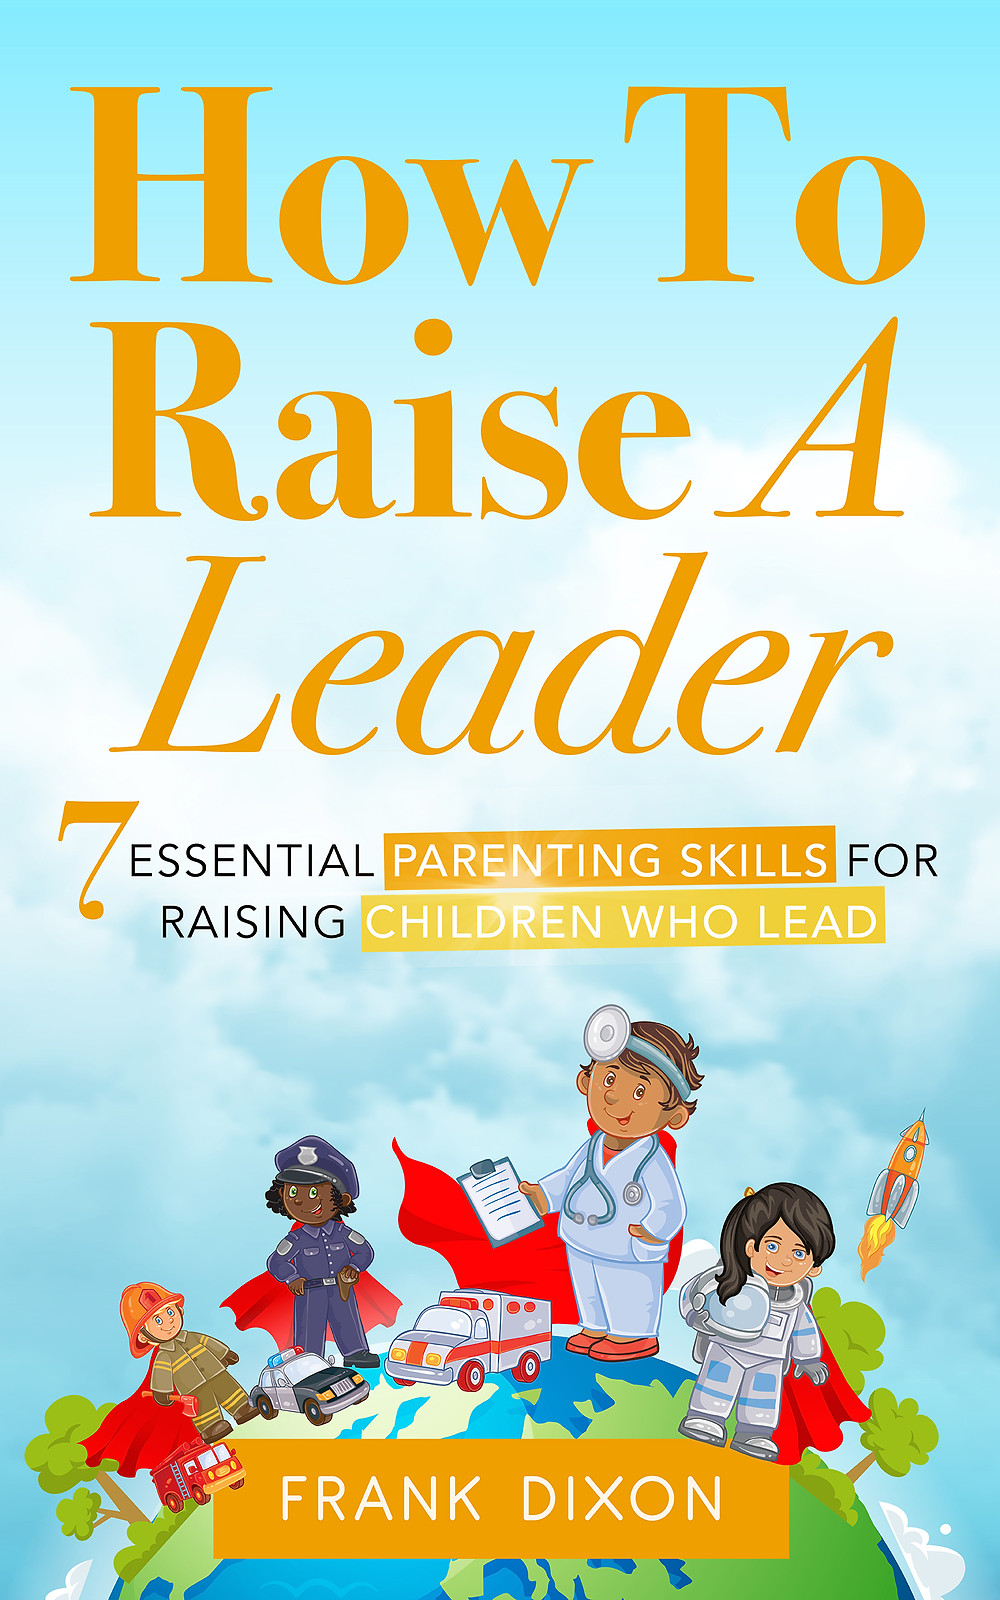 7 Essential Parenting Skills for Raising Children Who Lead, now available on Amazon!